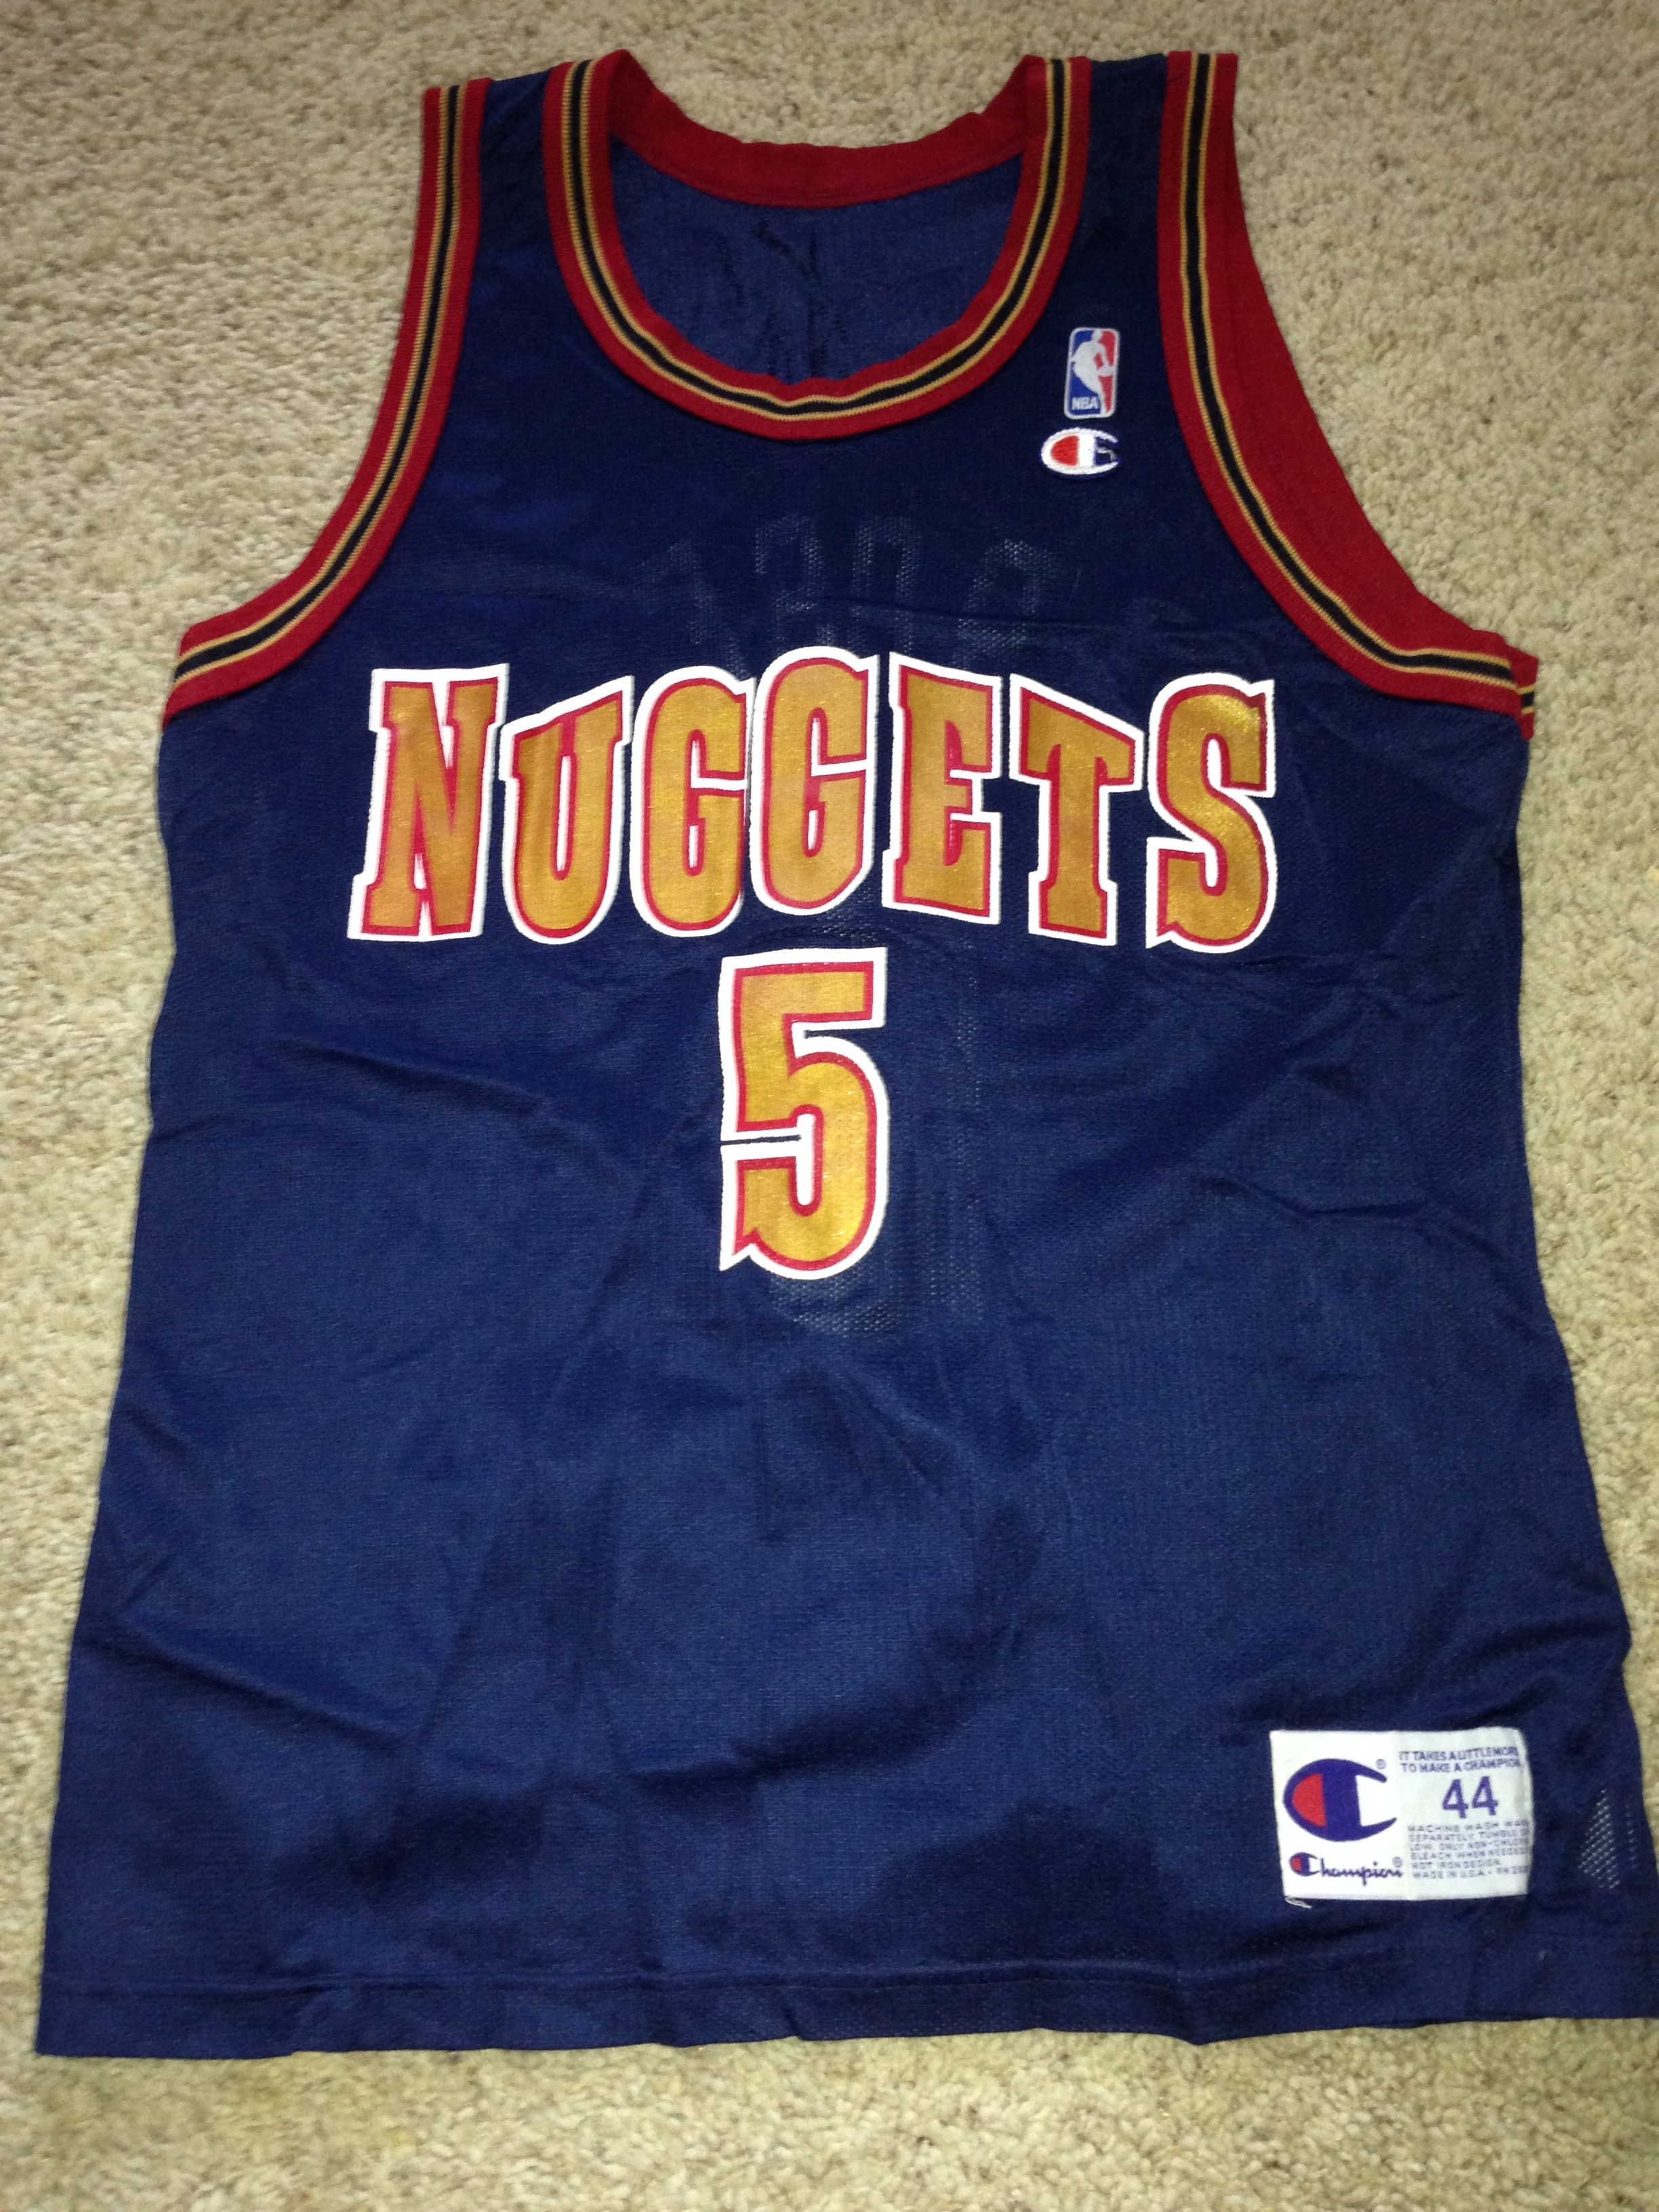 the best attitude 4e1aa 924aa old nuggets jersey